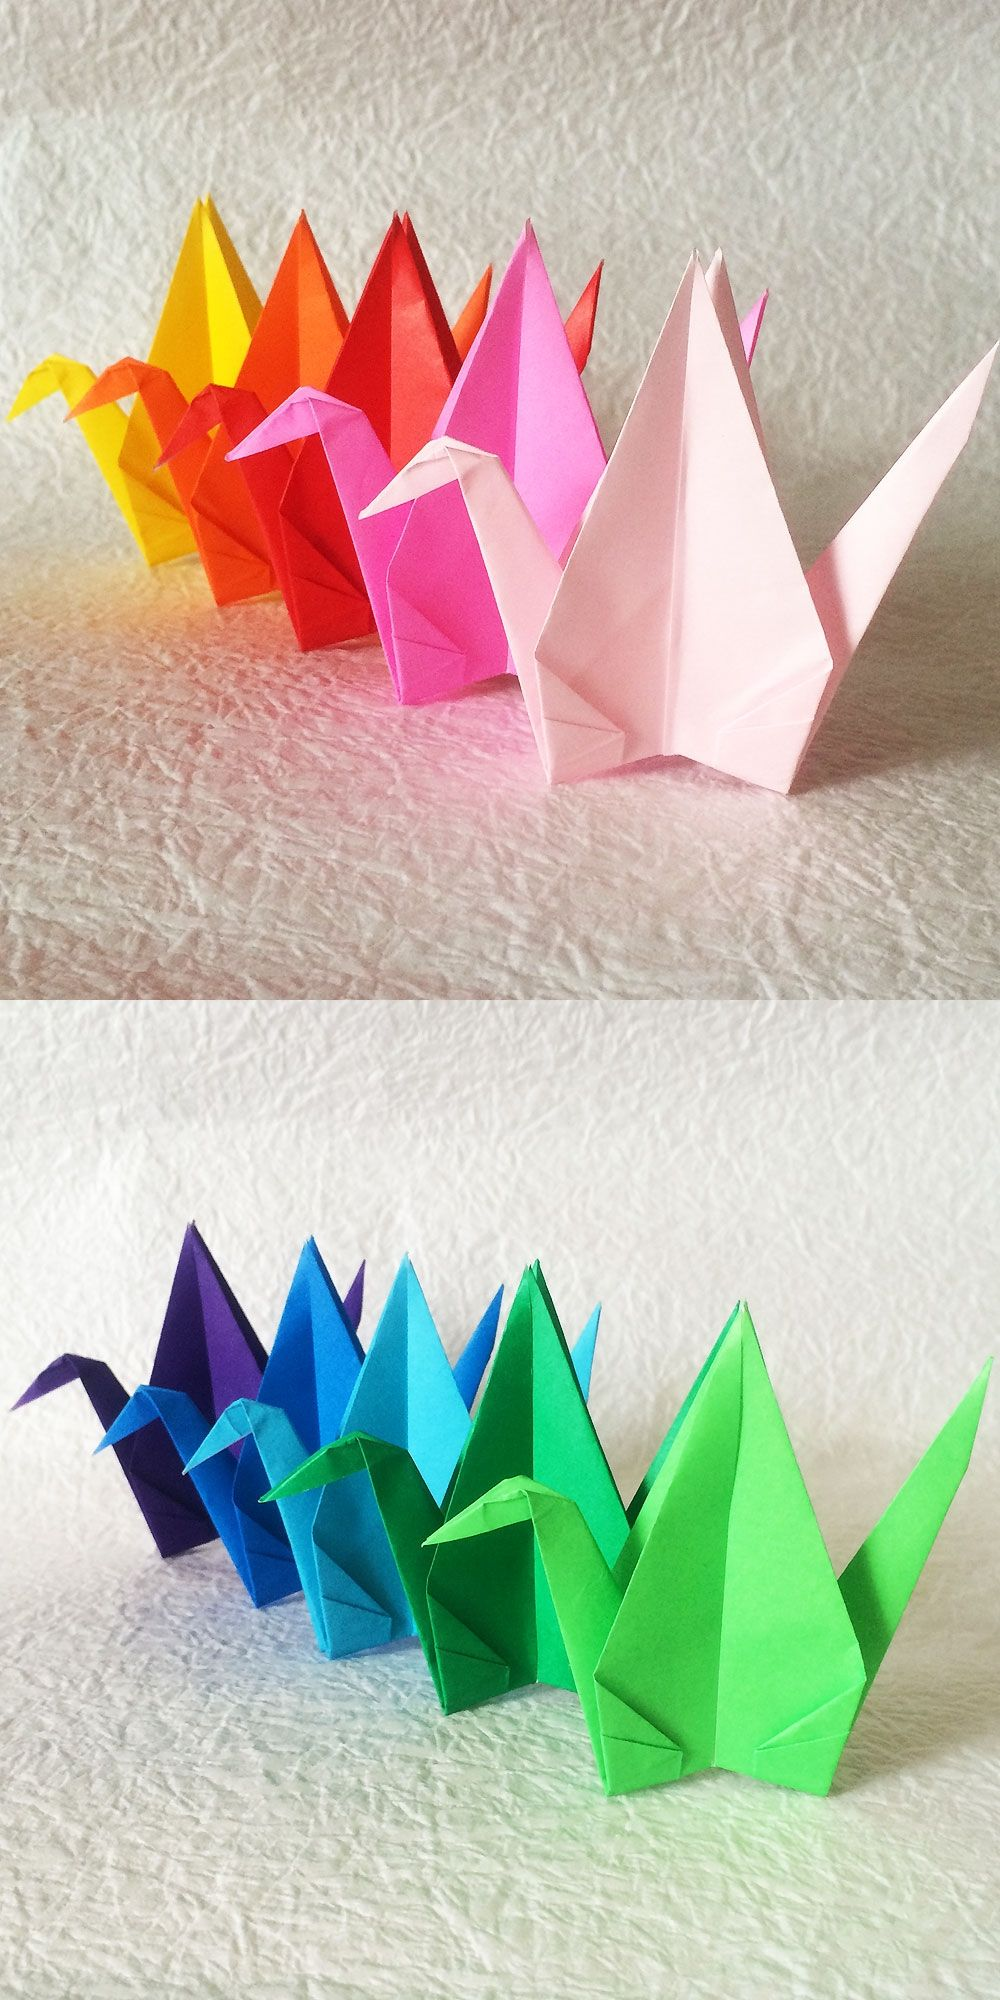 Origami inflatable swan by roman diaz folded by gilad aharoni origami inflatable swan by roman diaz folded by gilad aharoni origami pinterest origami origami paper and craft jeuxipadfo Image collections